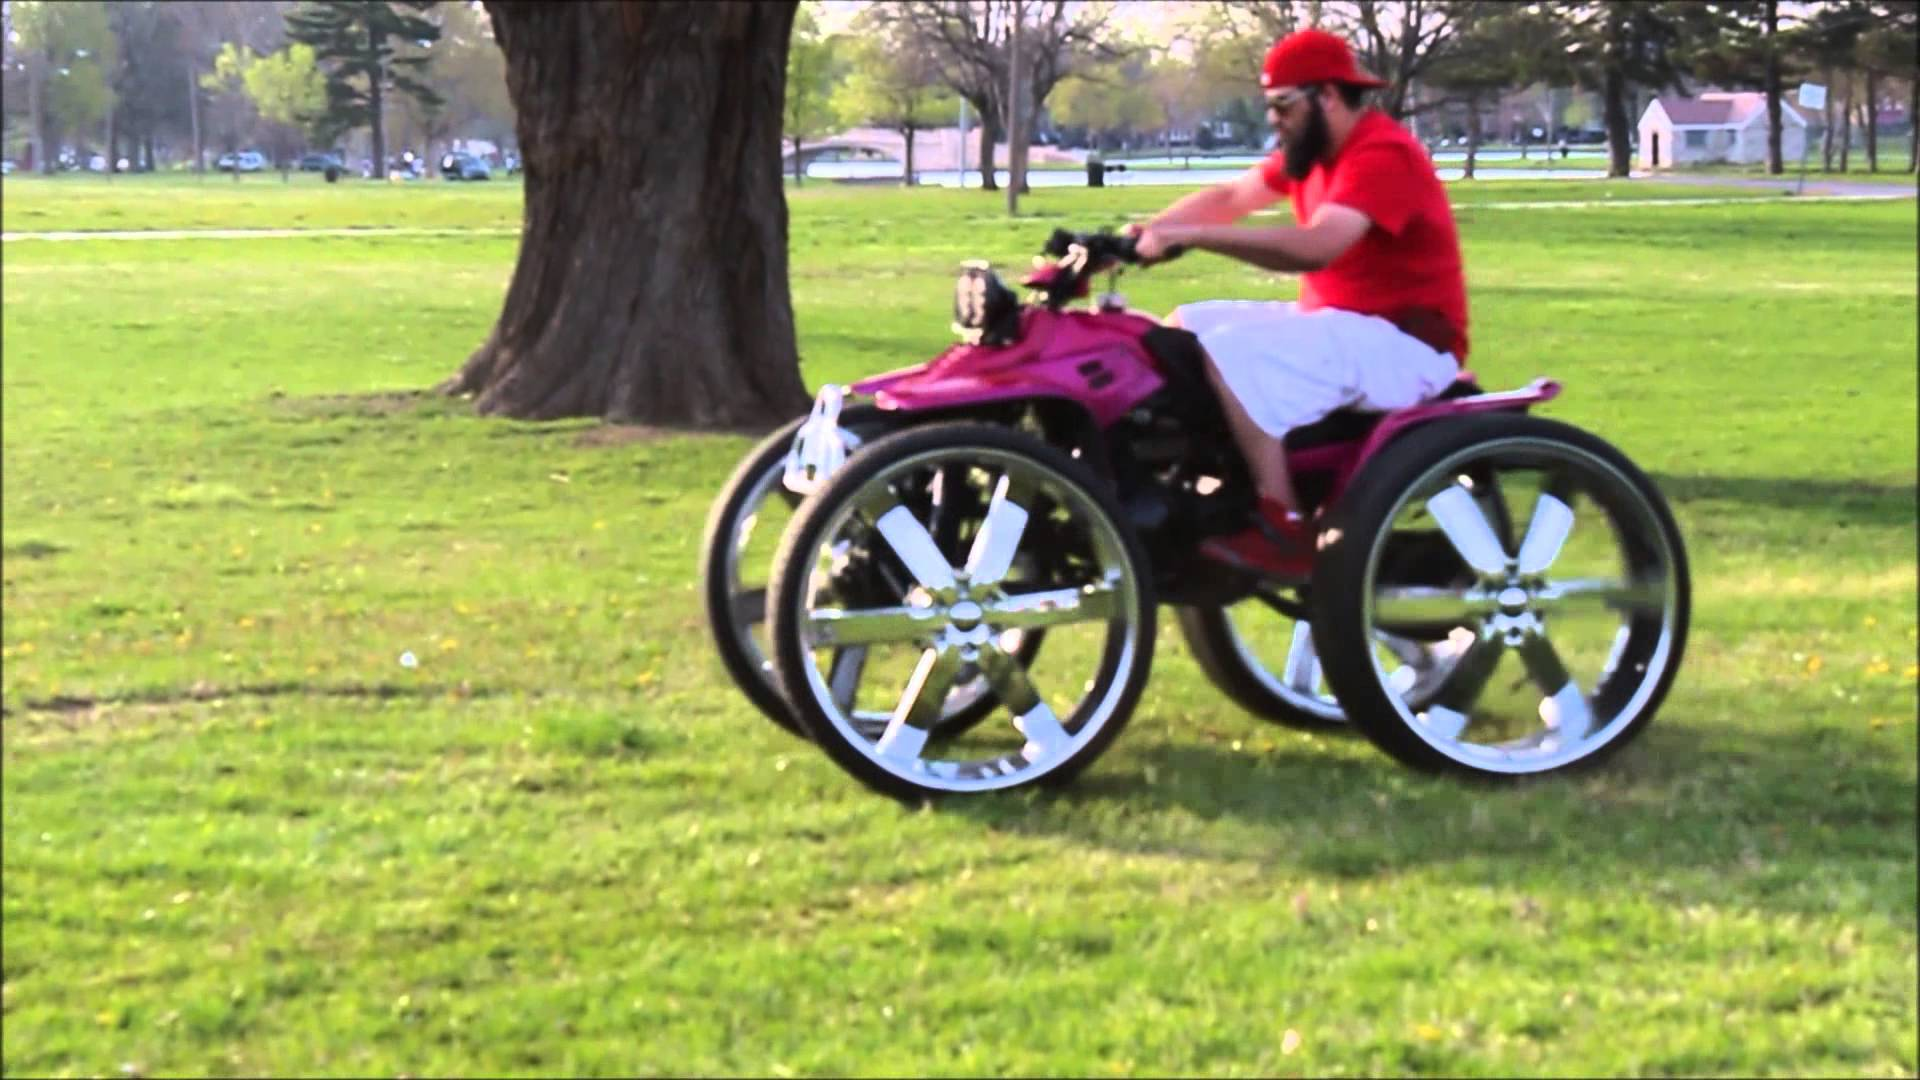 Cool Four Wheelers : World s ugliest wheeler doing donuts on is epic fun